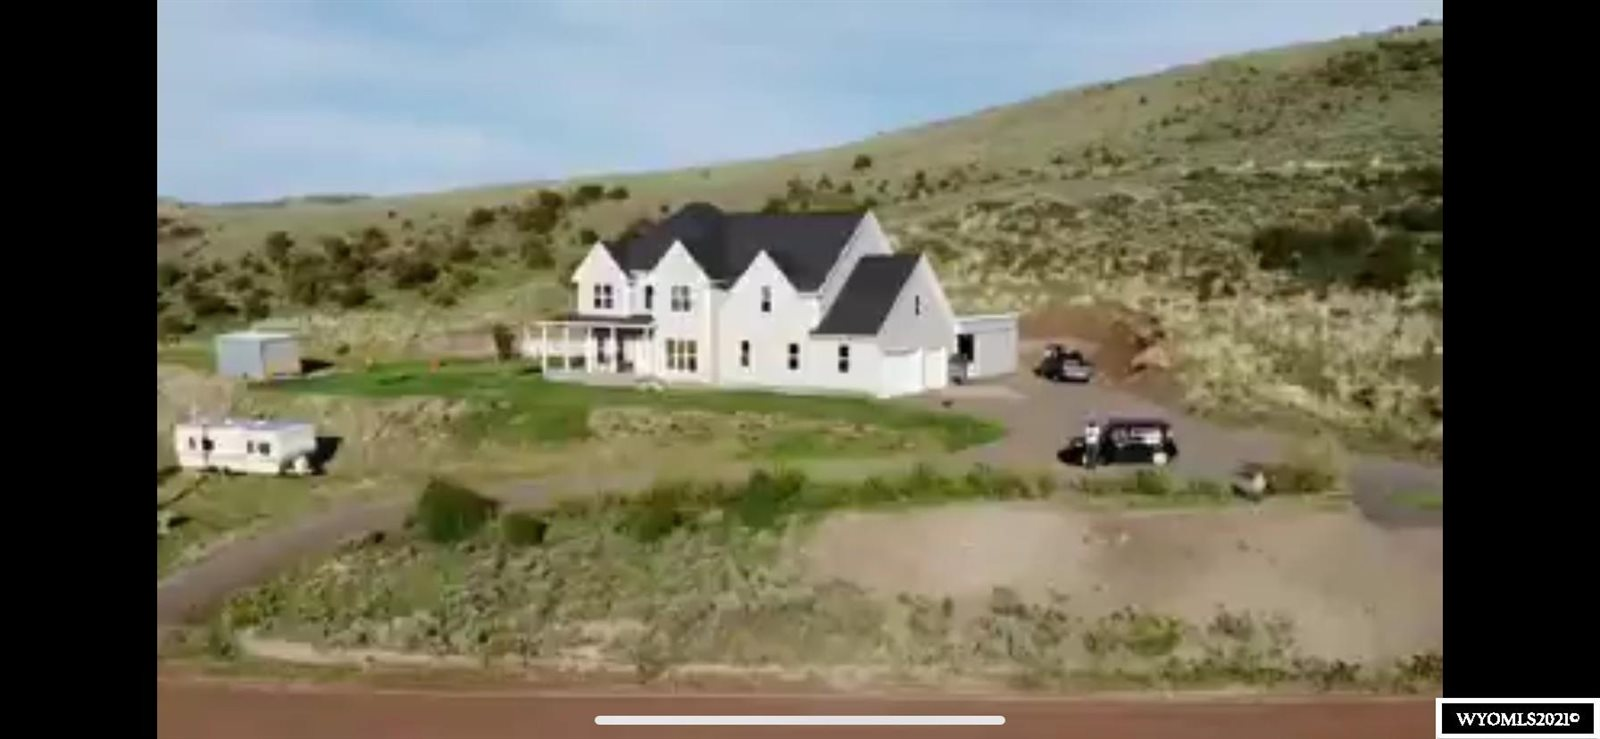 227 County Rd 157, Evanston, WY 82930